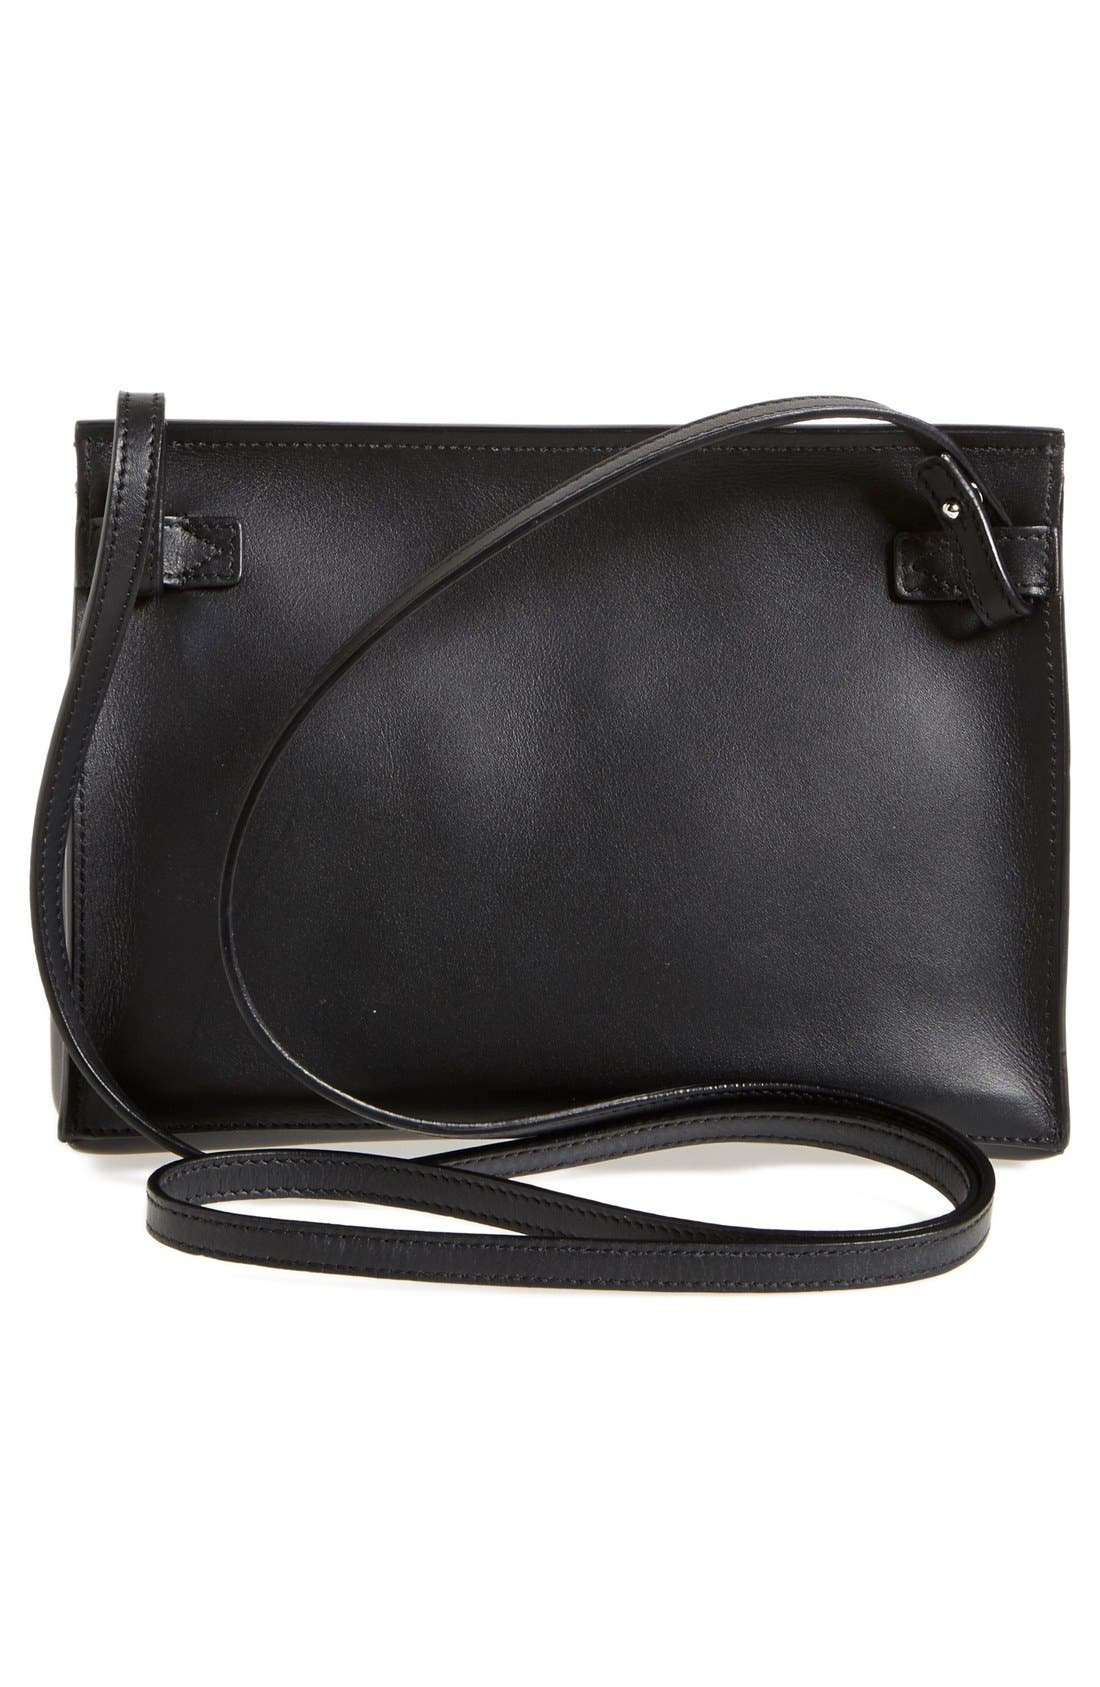 'Signature Collection - Small' Leather Crossbody Bag,                             Alternate thumbnail 3, color,                             001